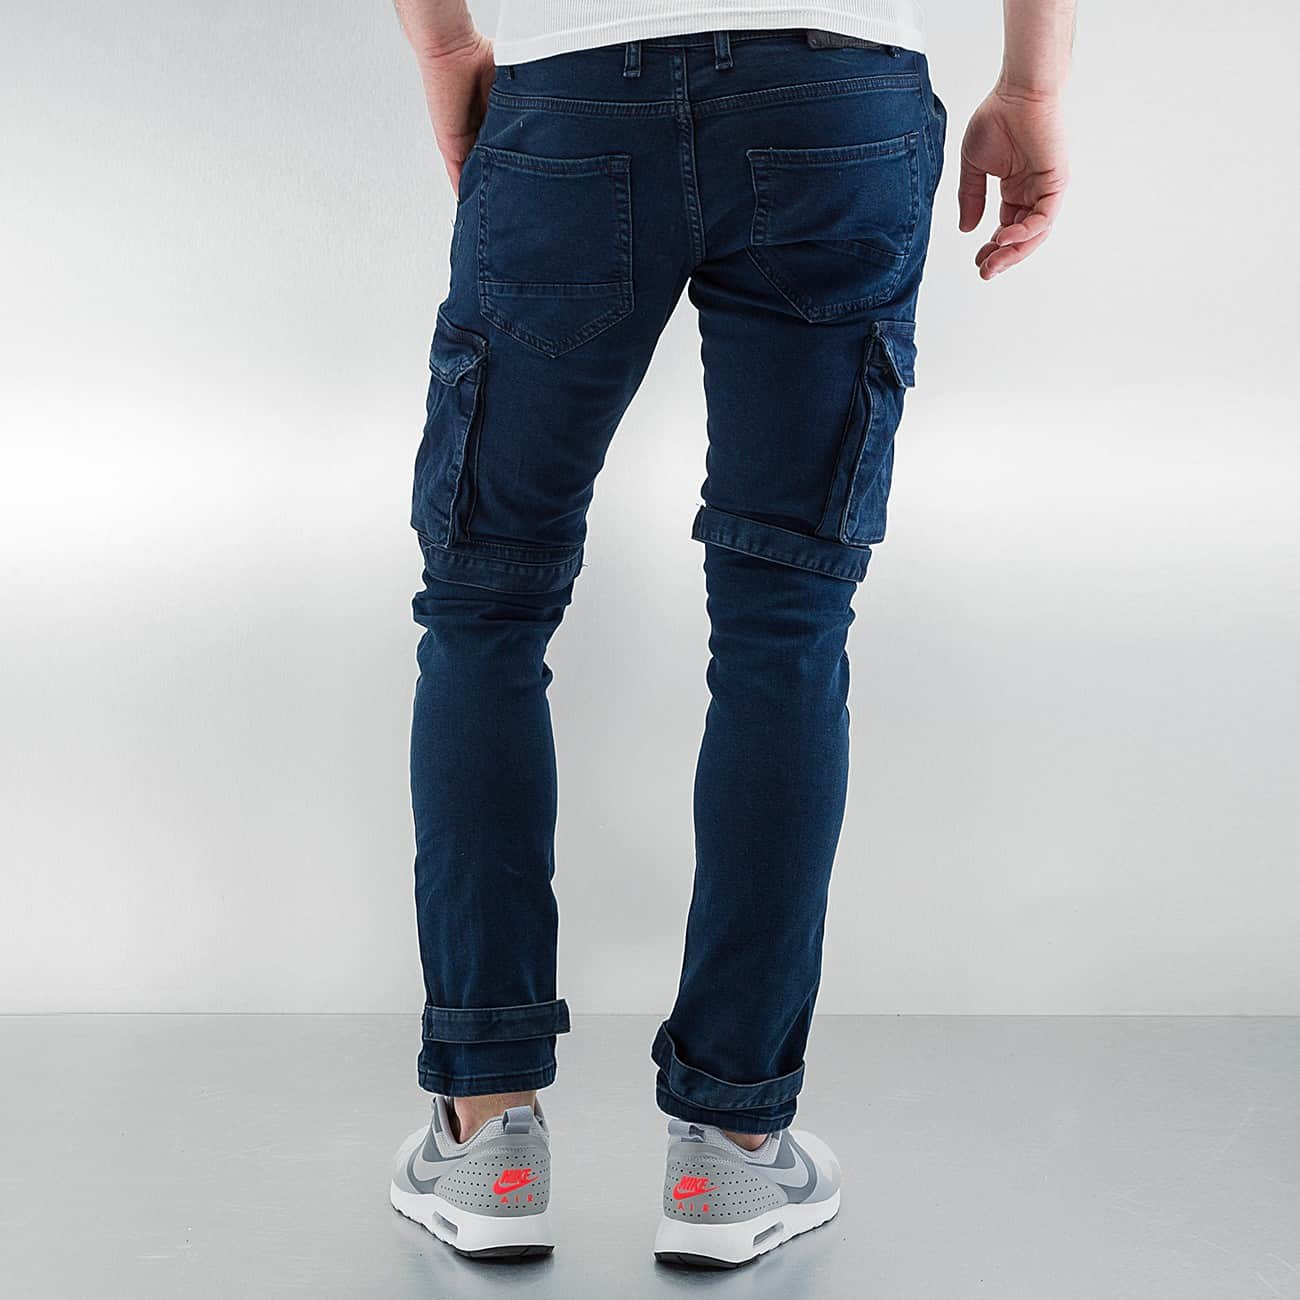 2Y / Cargo Velcro Closure in blue - Streetscenter